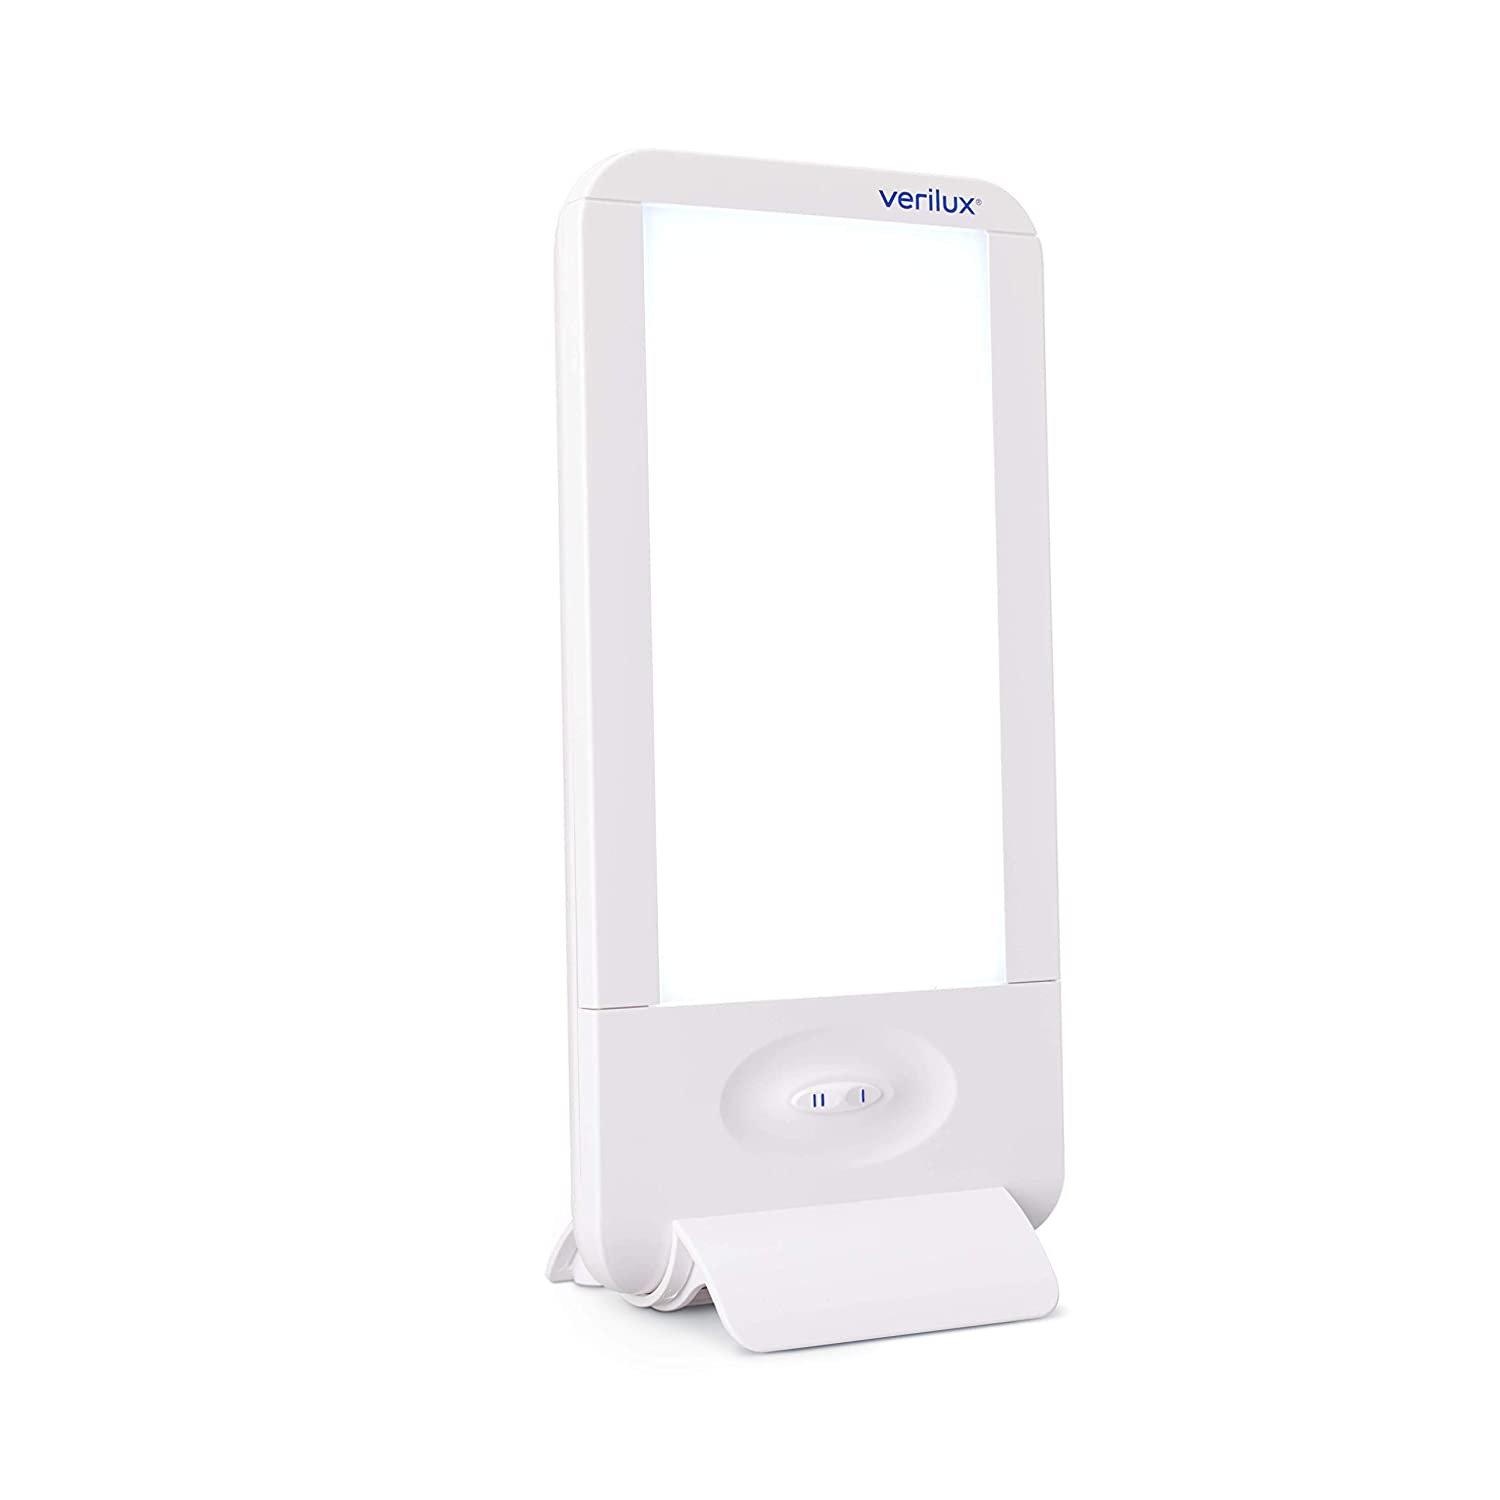 Verilux HappyLight Full-Size 10,000 lux Light Therapy Energy Lamp